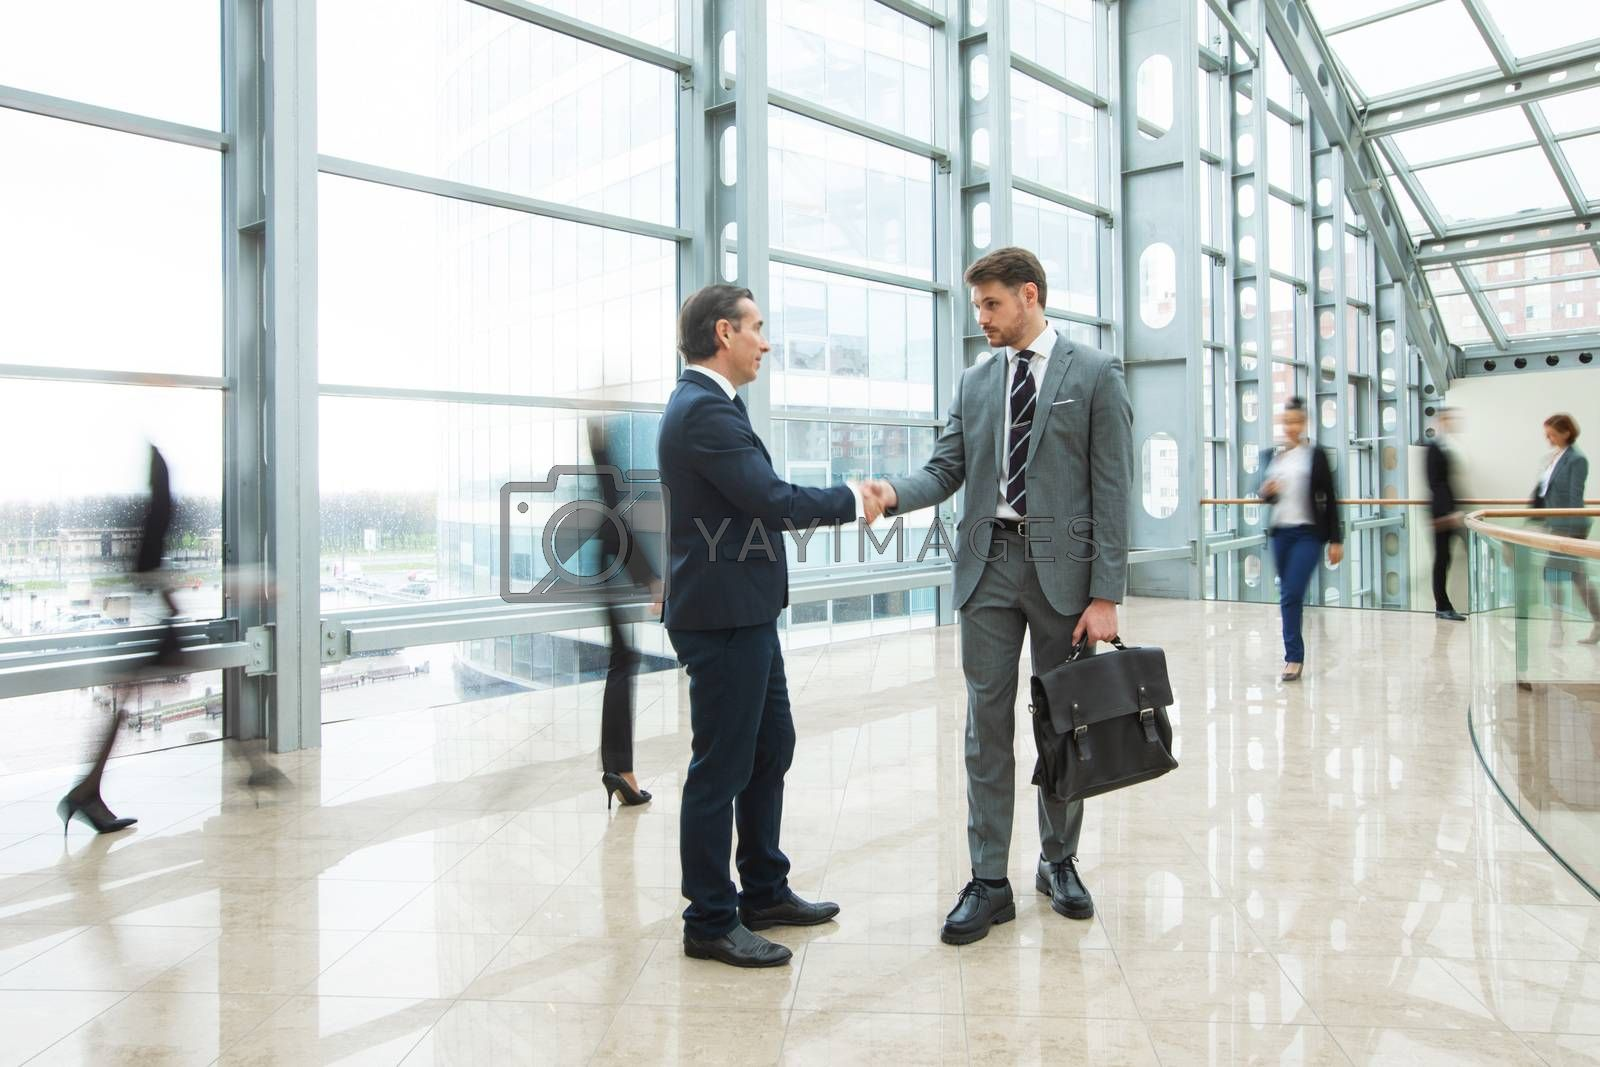 Business people shaking hands standing in a crowd of walking people